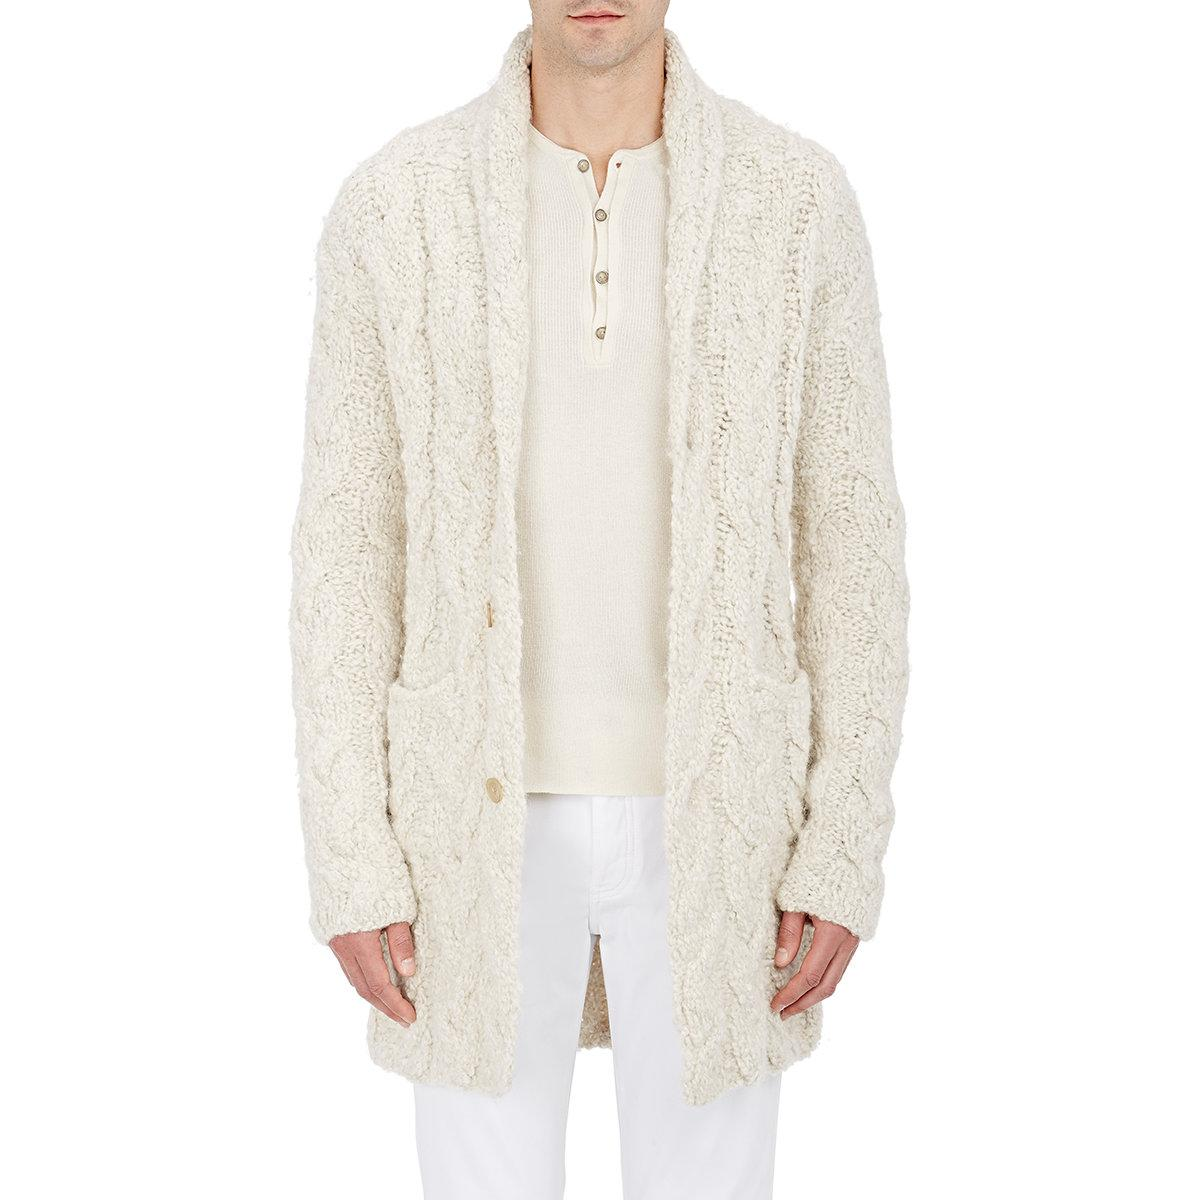 White Cable Knit Cardigan Mens